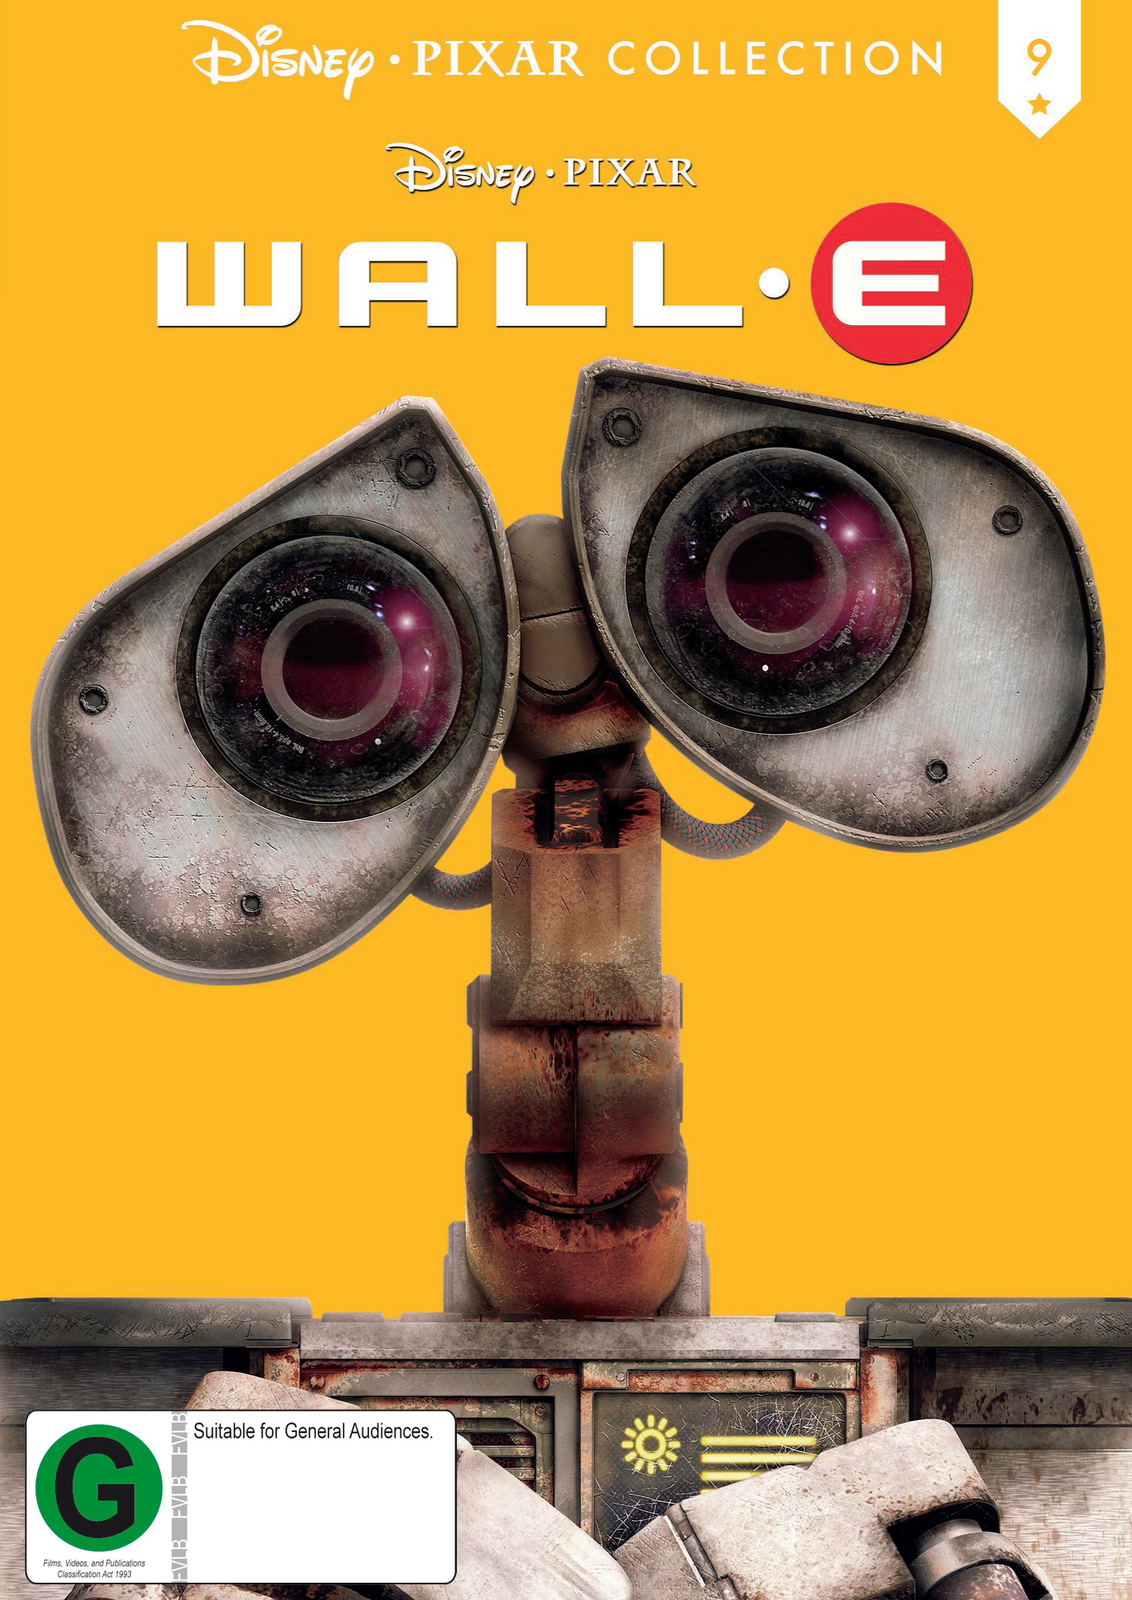 Wall-E (Pixar Collection 9) | DVD | Buy Now | at Mighty Ape NZ